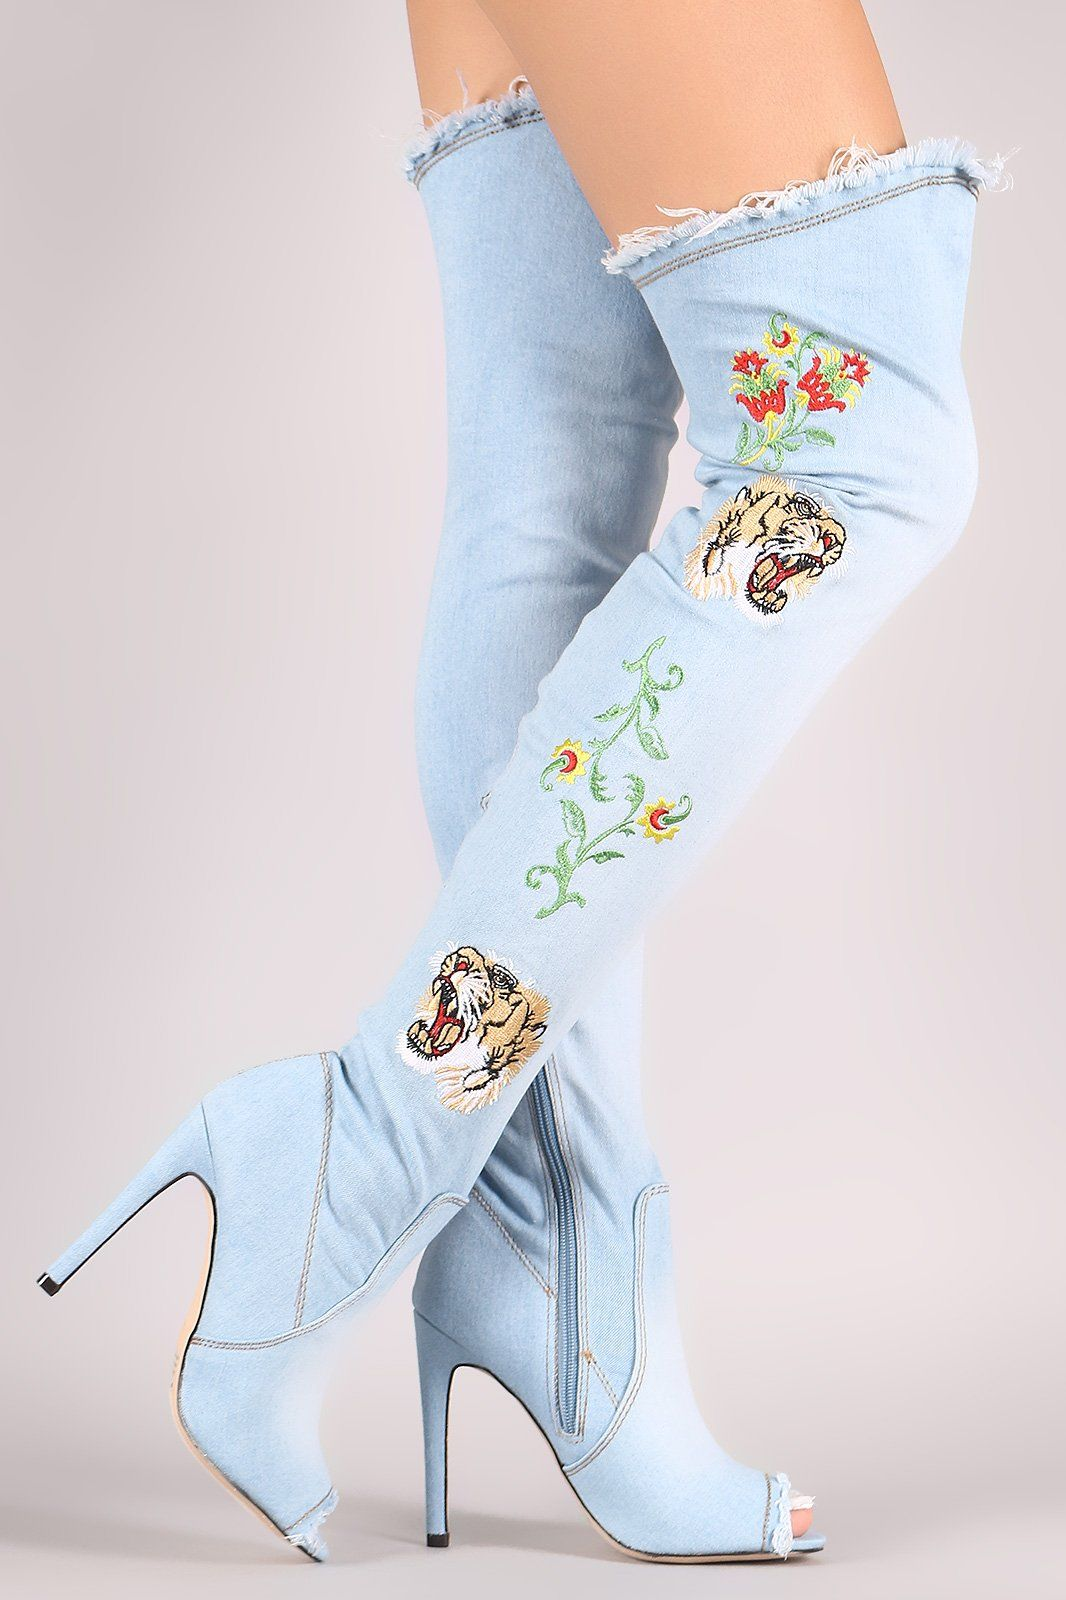 3cb24b2697c These over-the-knee boots feature a frayed detailing at front and top  opening. Embroidered floral and tiger head embellishment at side. Peep toe  silhouette ...